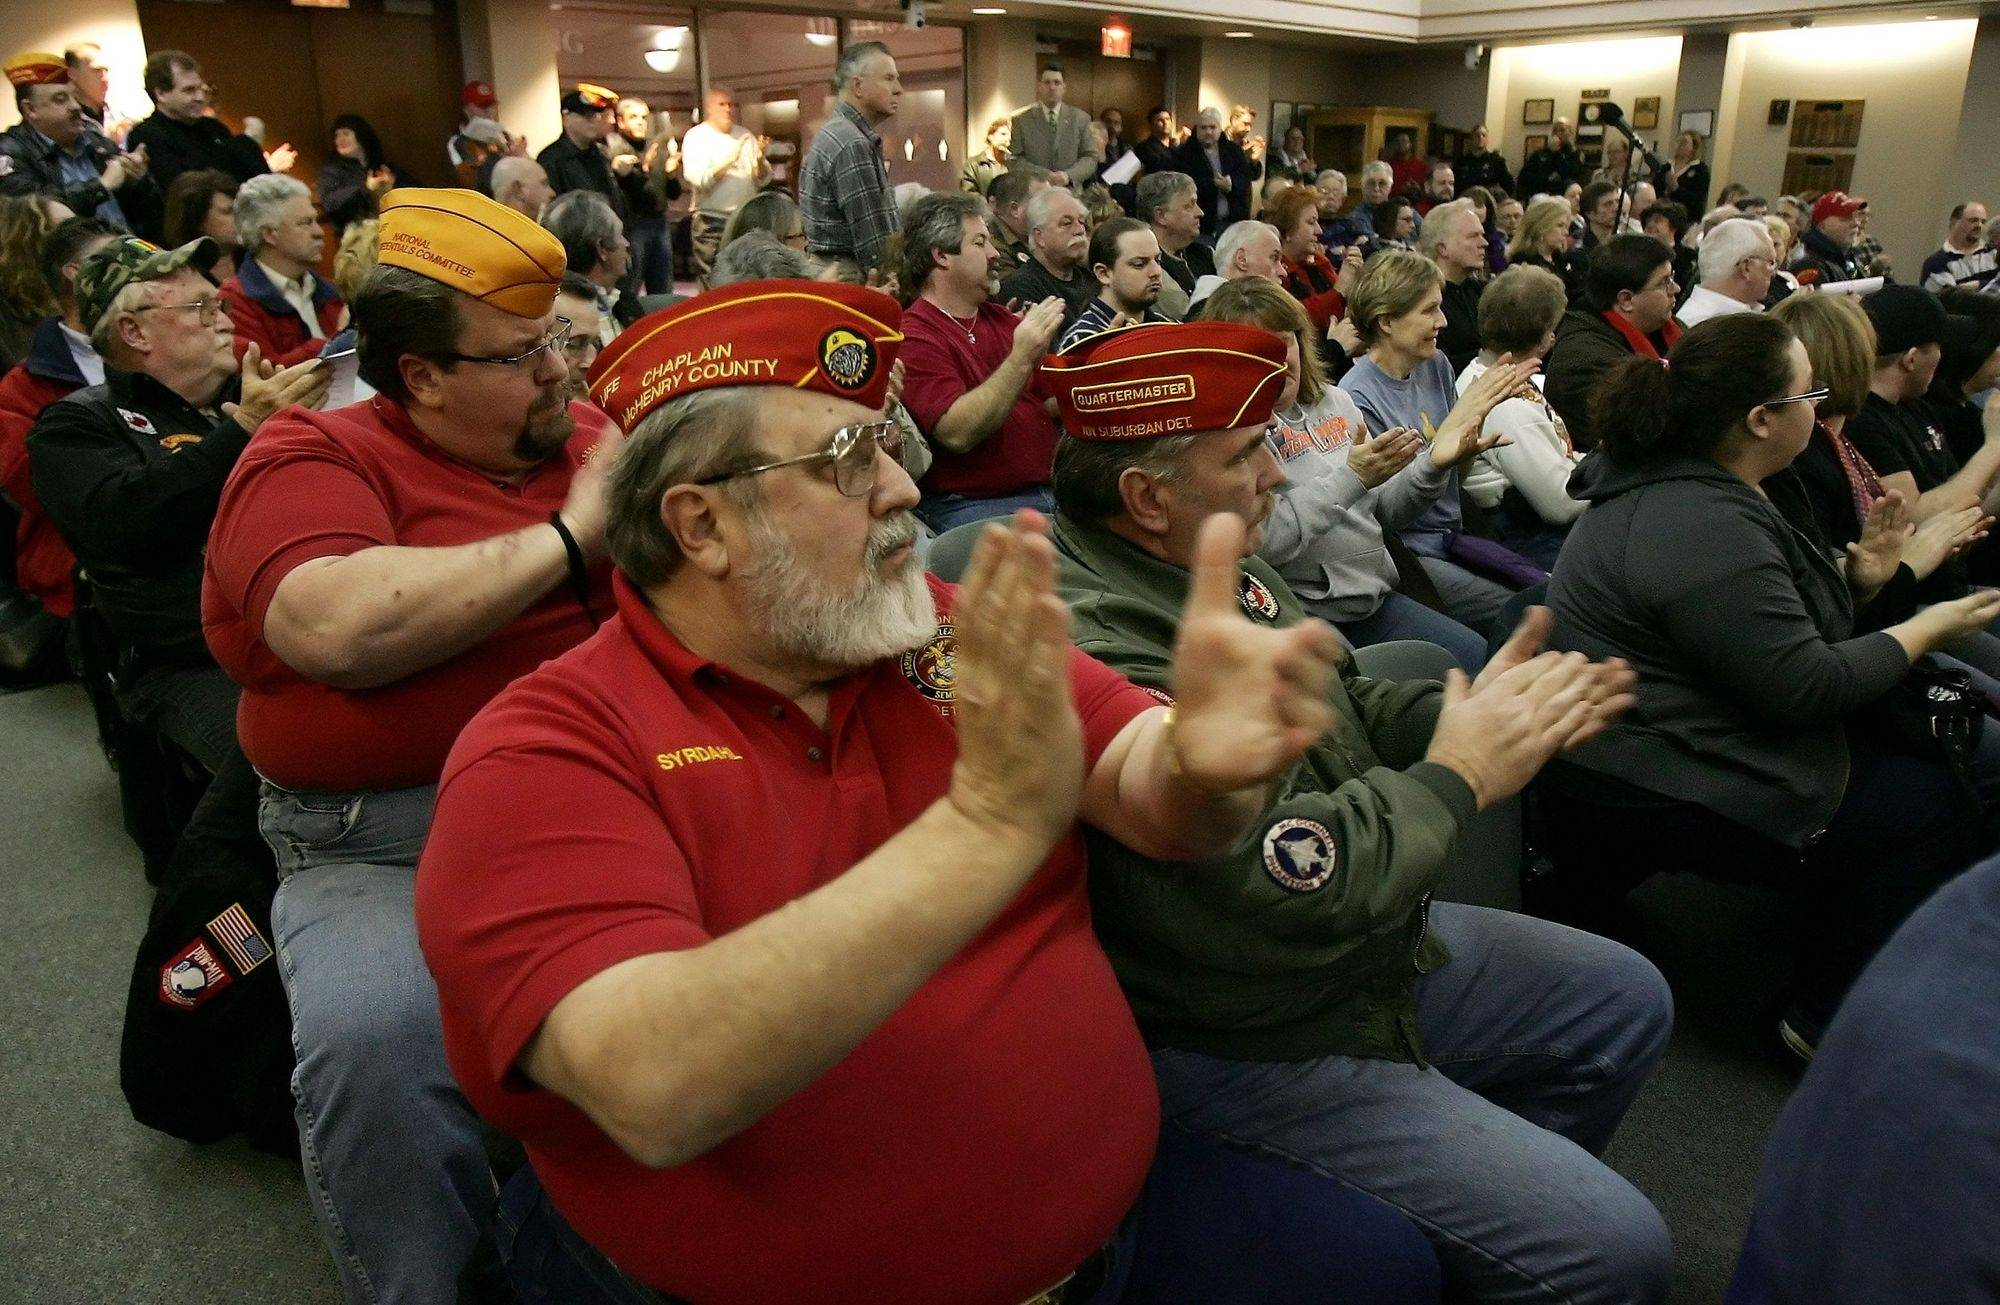 Despite crowd, Gurnee veterans memorial stays in limbo